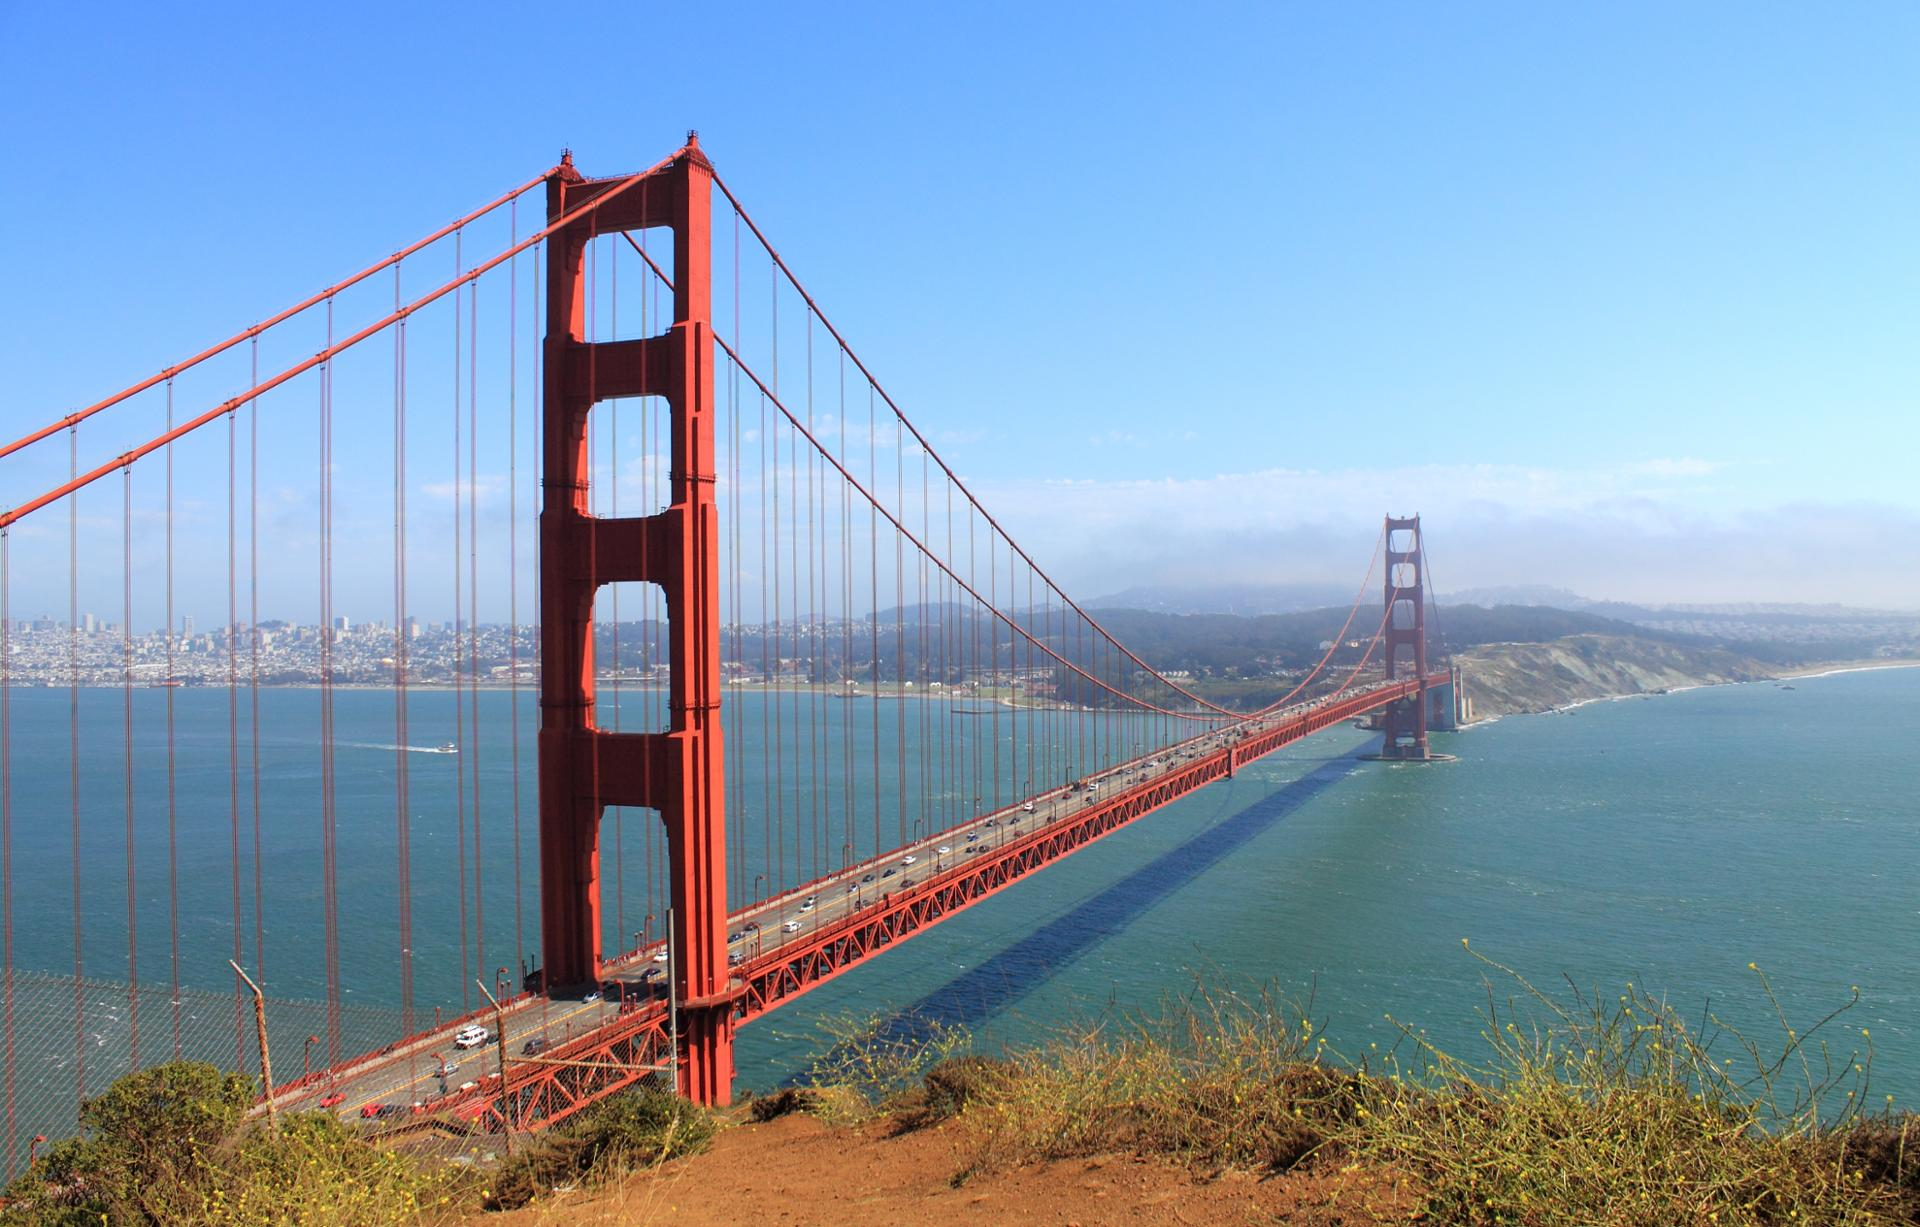 The Golden Gate - San Francisco